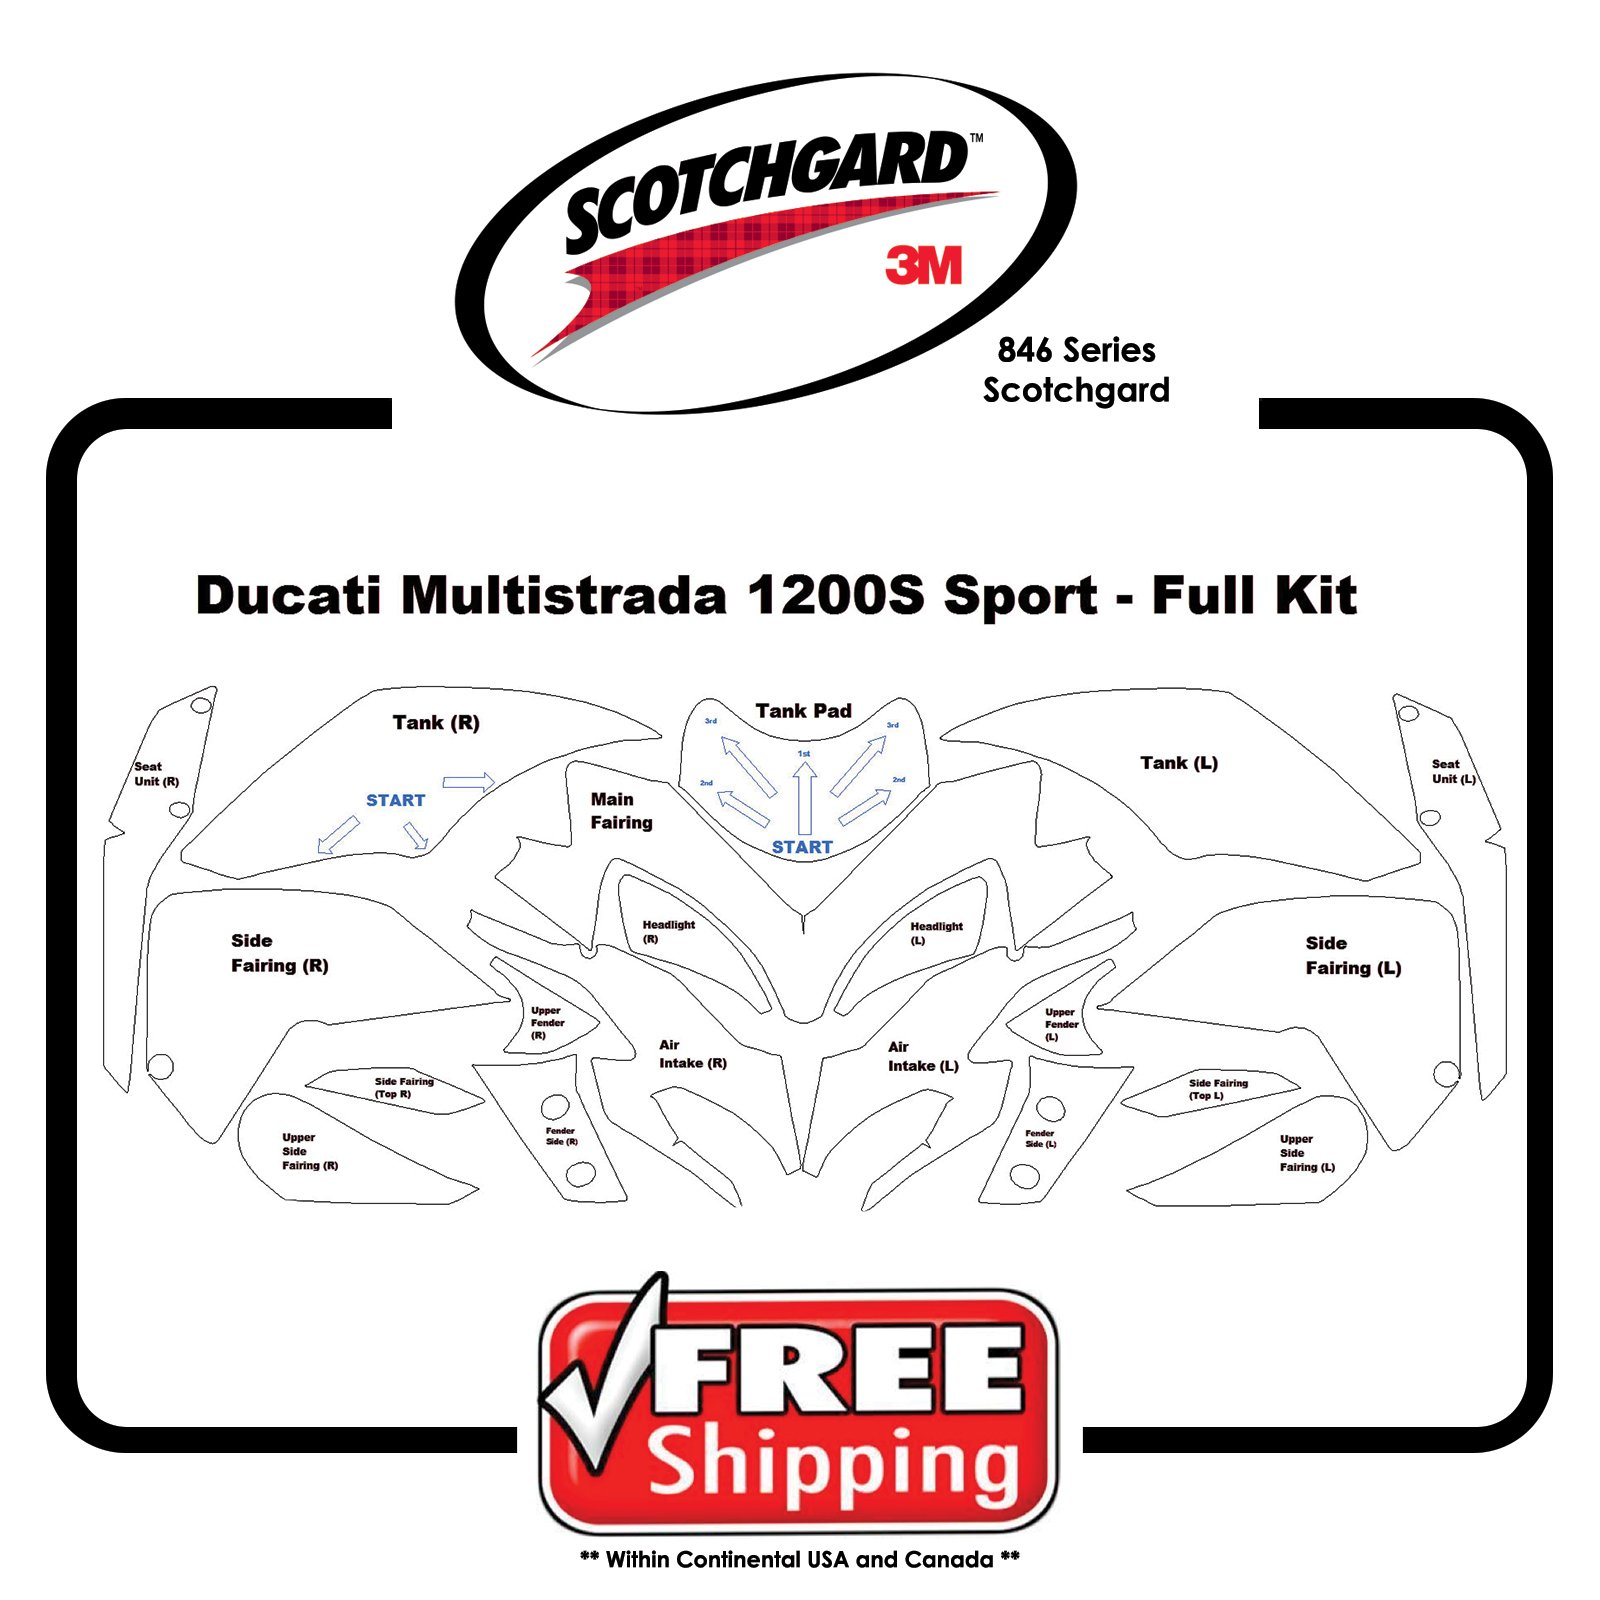 Kits for Ducati Multisrada 1200s Sport - 3M 846 Scotchgard- Paint Protection